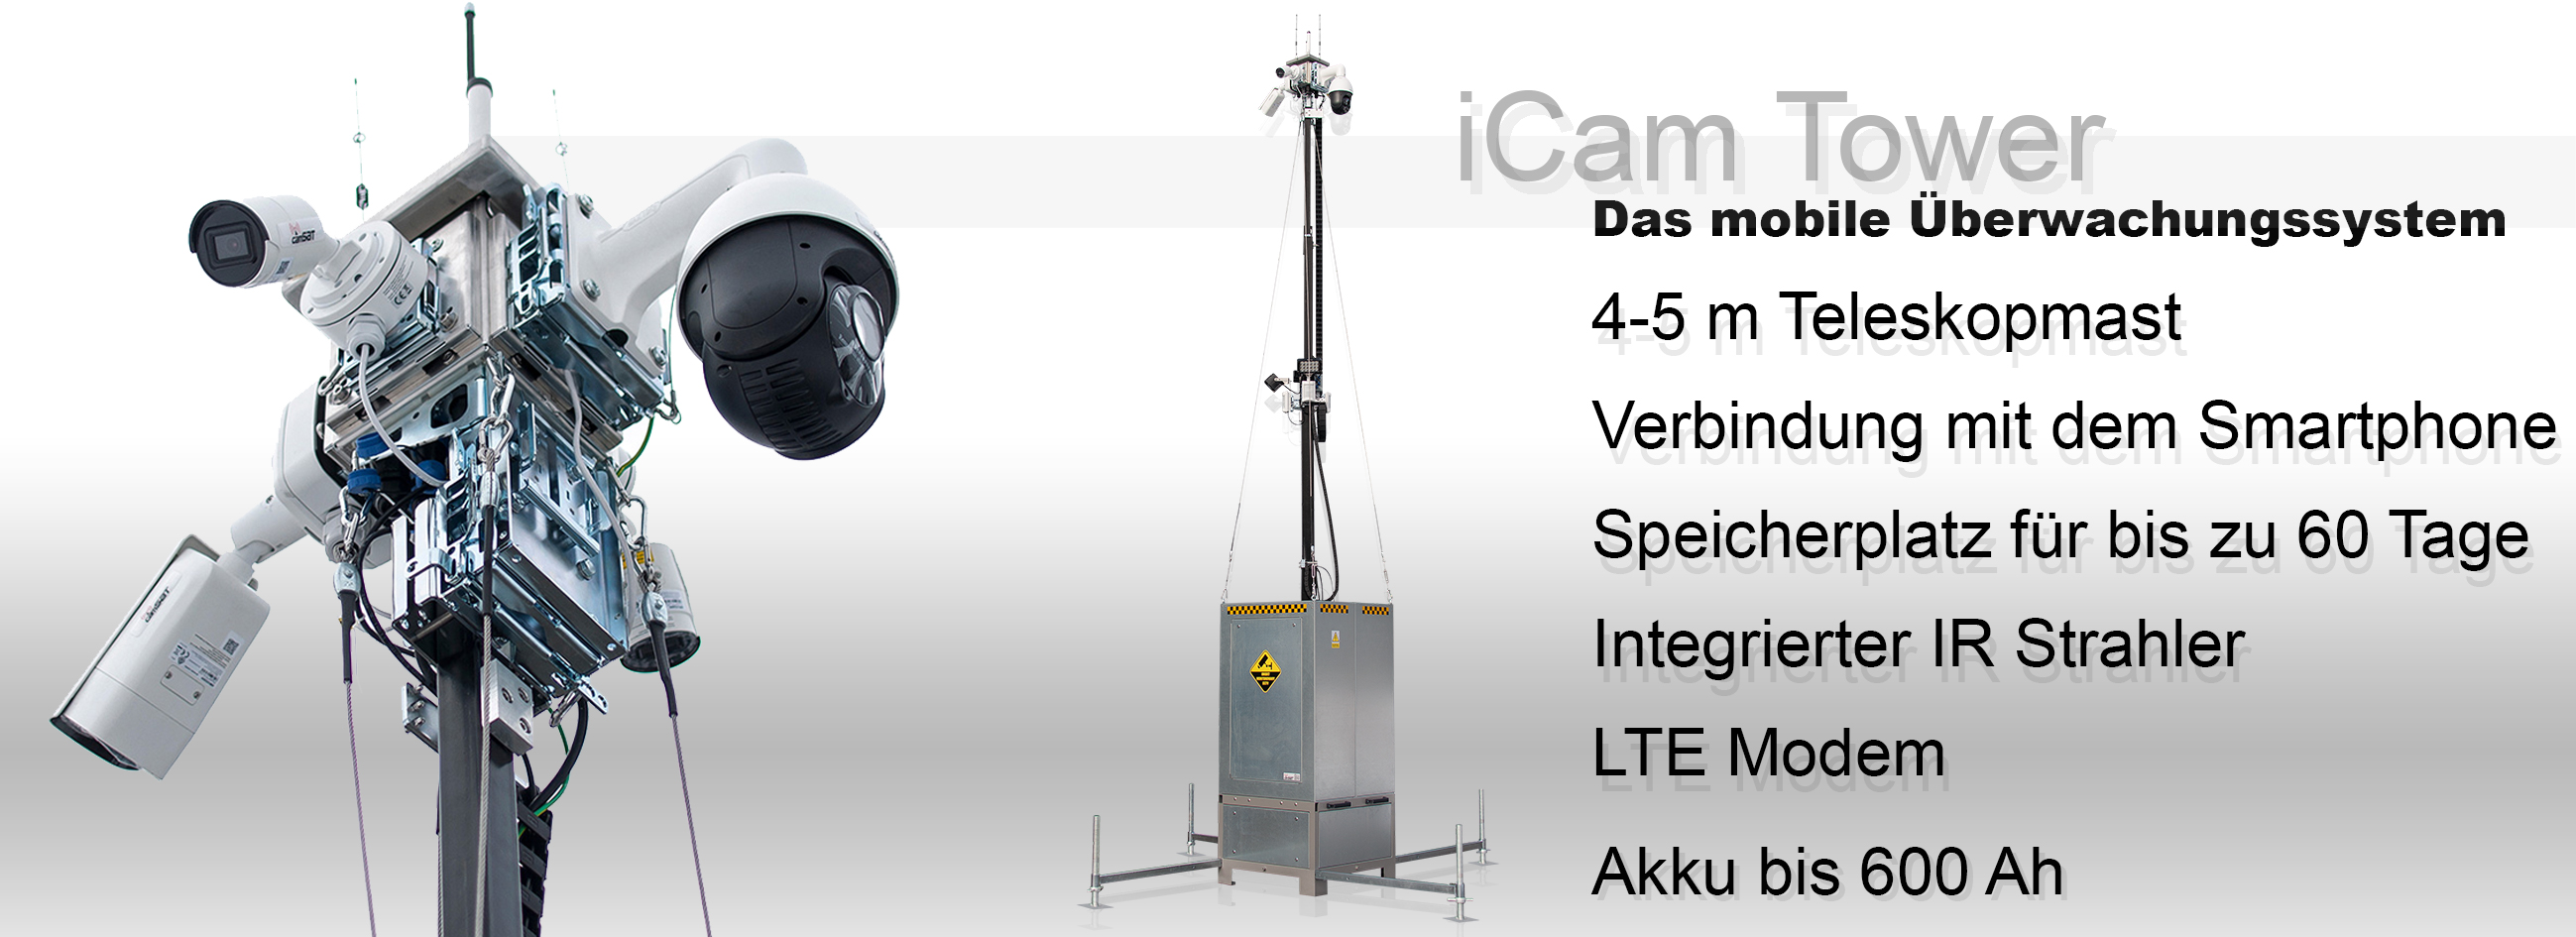 iCAM-Tower